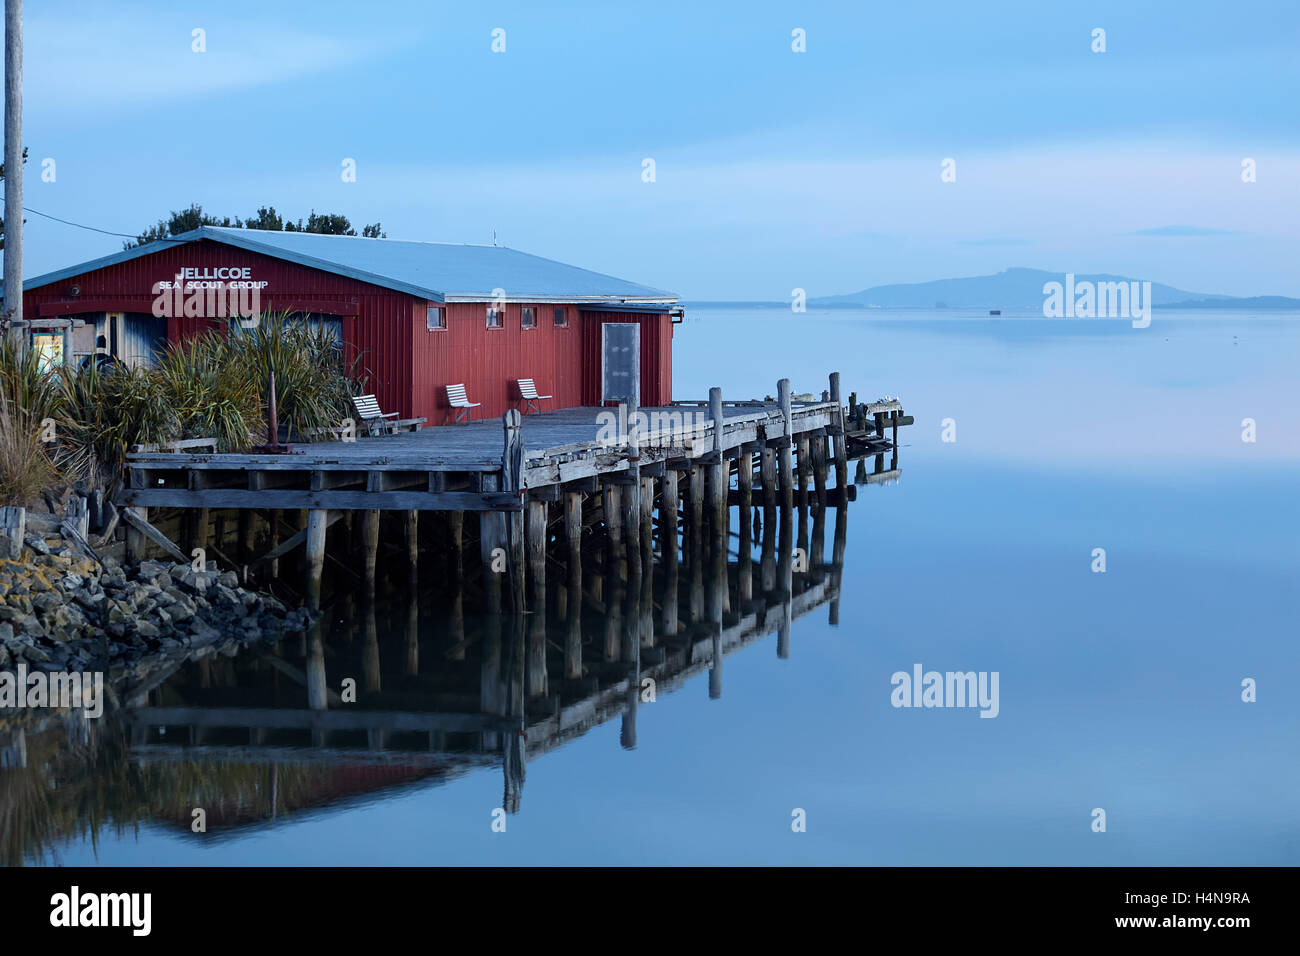 Jellicoe Sea Scout Building and New River Estuary at dusk, Invercargill, Southland, South Island, New Zealand - Stock Image